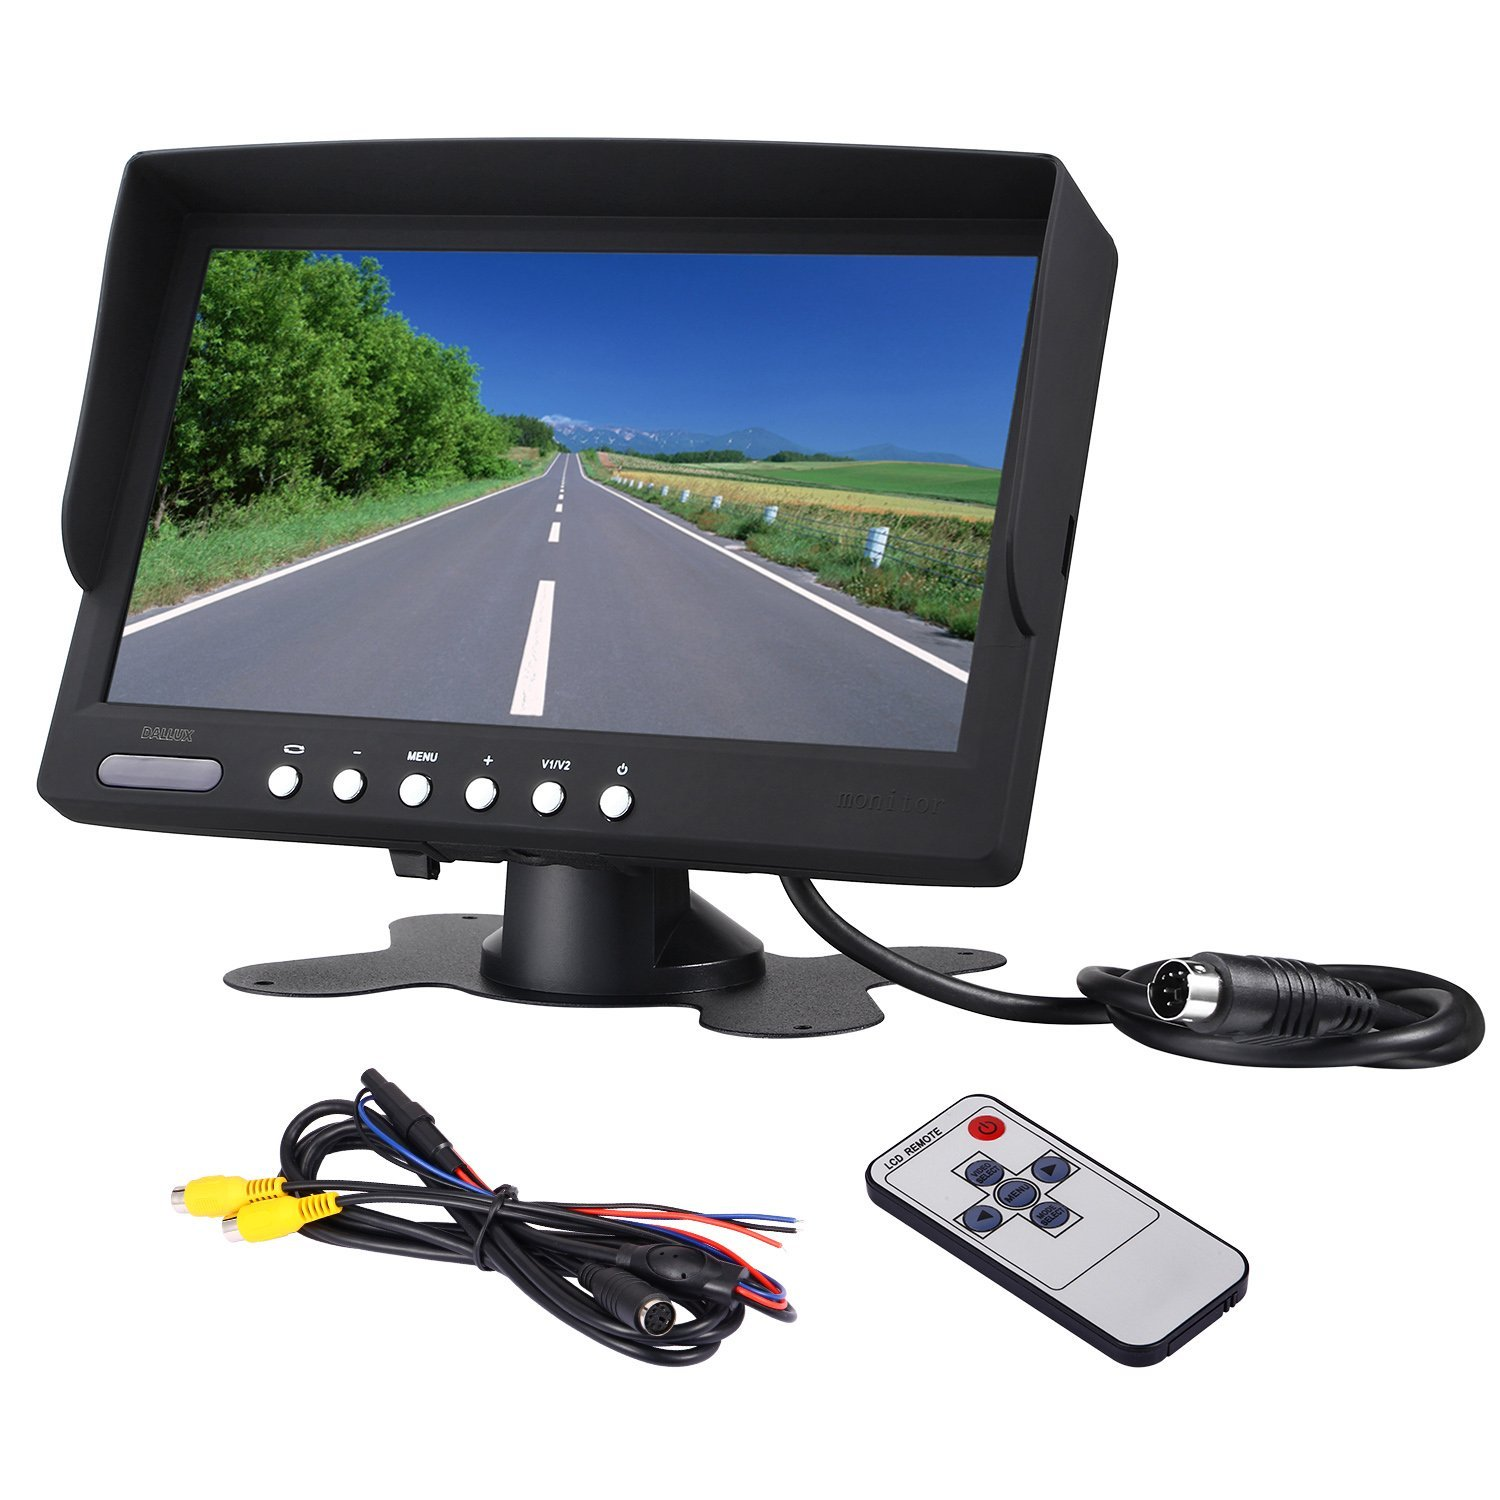 Get Quotations Bus Truck Rearview Camera LCD Monitor Heavy Duty Vehicle Screen LED Backlight High Resolution Backup